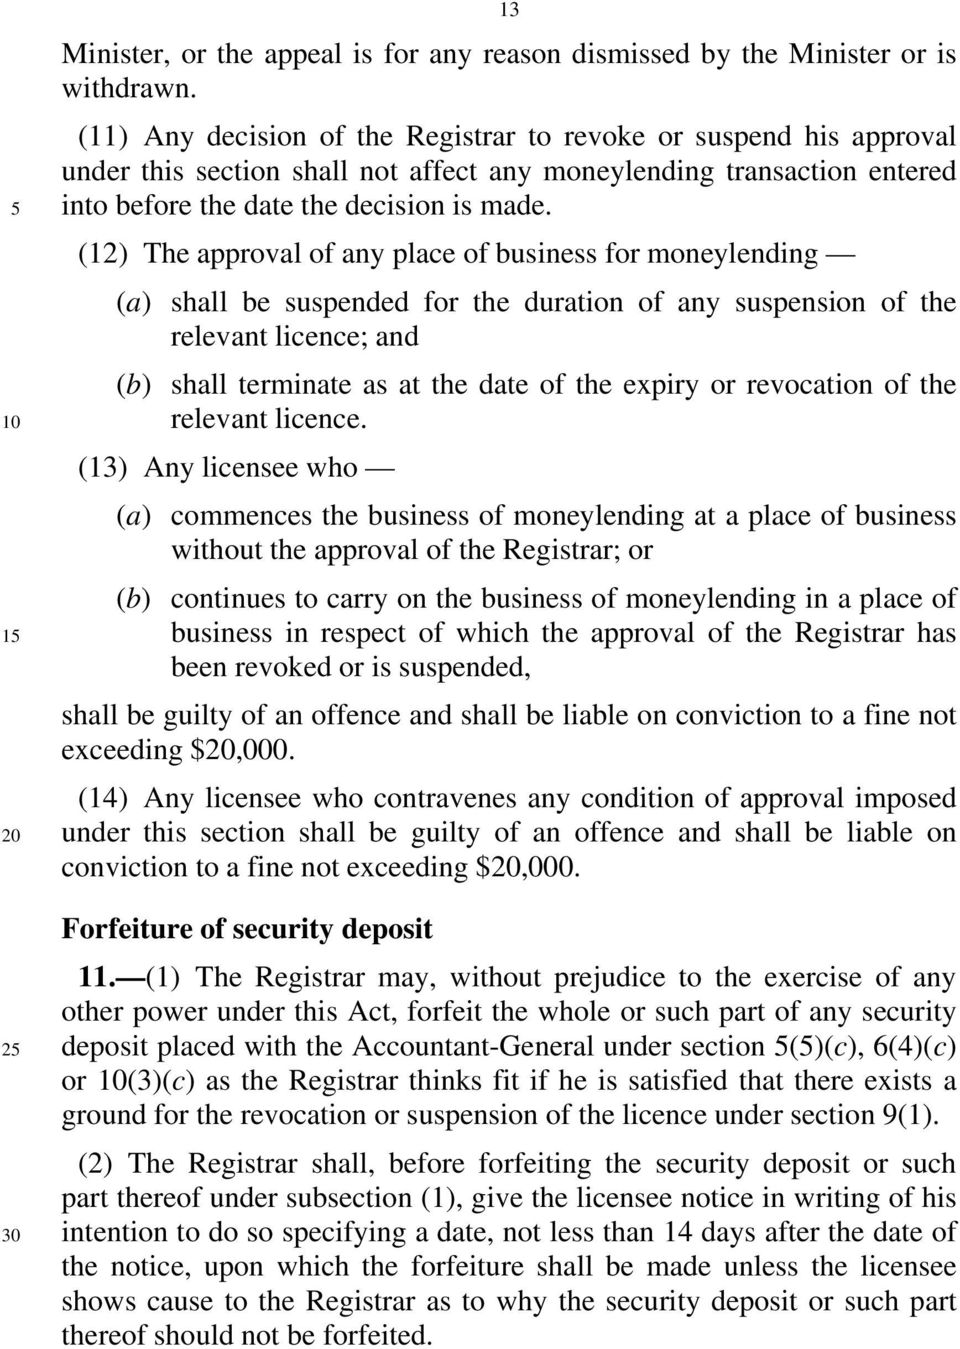 (12) The approval of any place of business for moneylending (a) shall be suspended for the duration of any suspension of the relevant licence; and (b) shall terminate as at the date of the expiry or